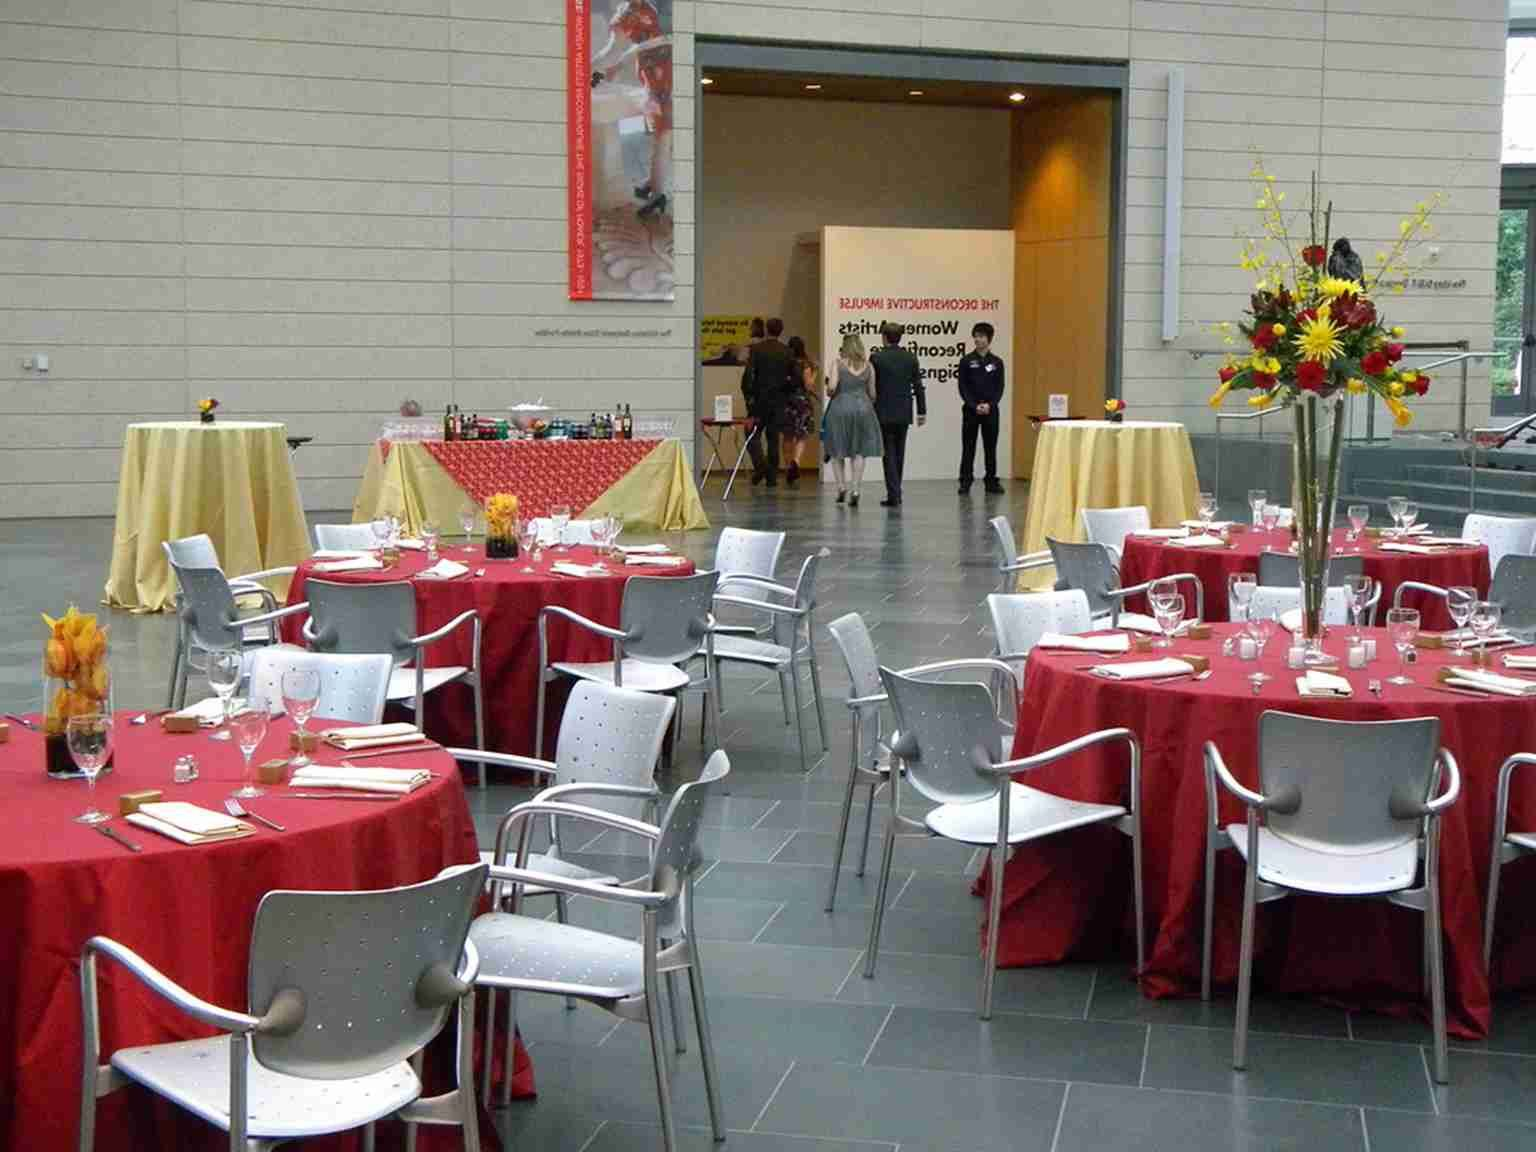 Wedding Reception Tables And Chairs For Sale Table Decorations Chairs For Sale Wedding Reception Tables